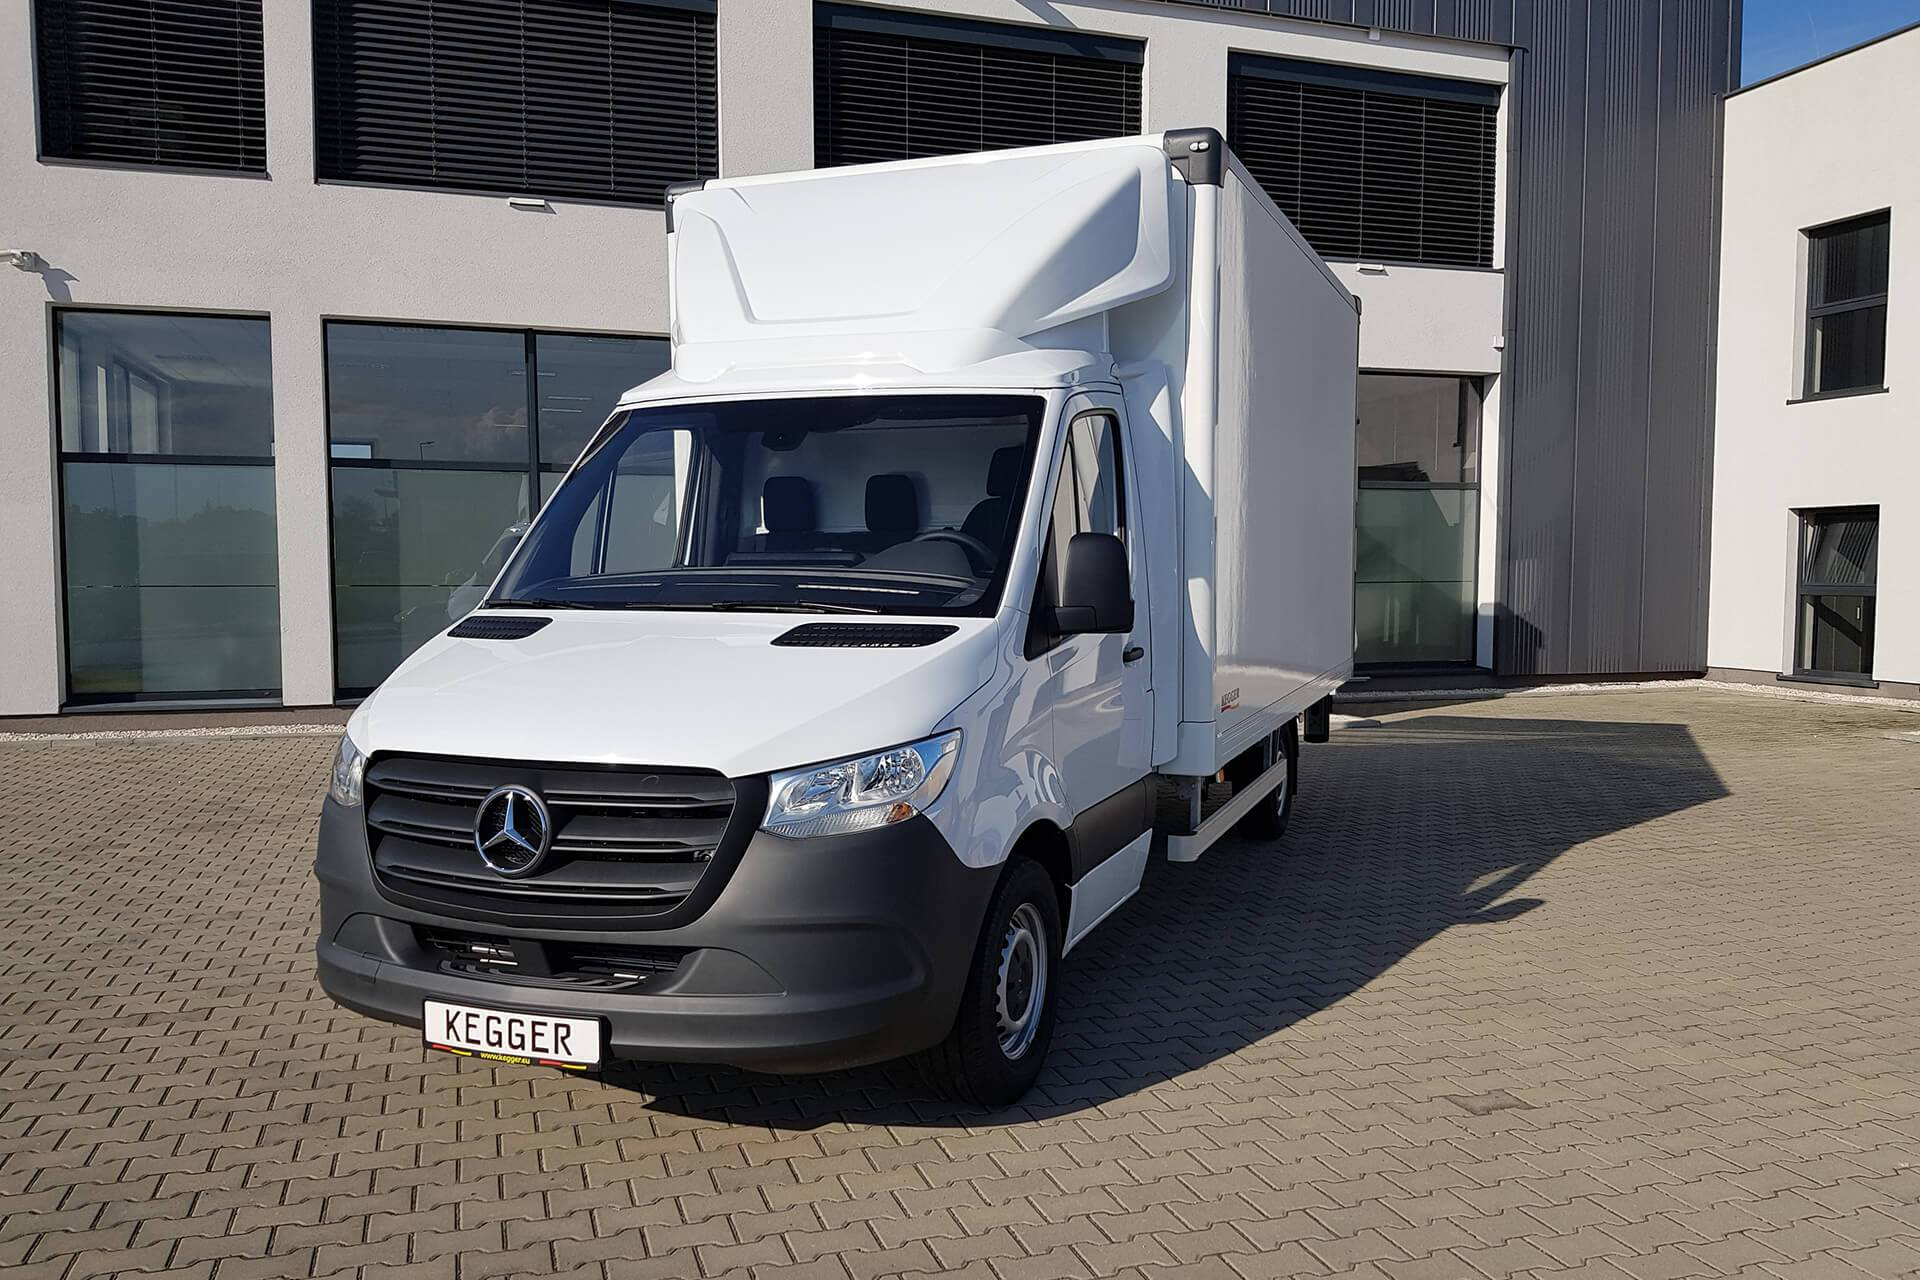 Mercedes Koffer - Speciale opbouw